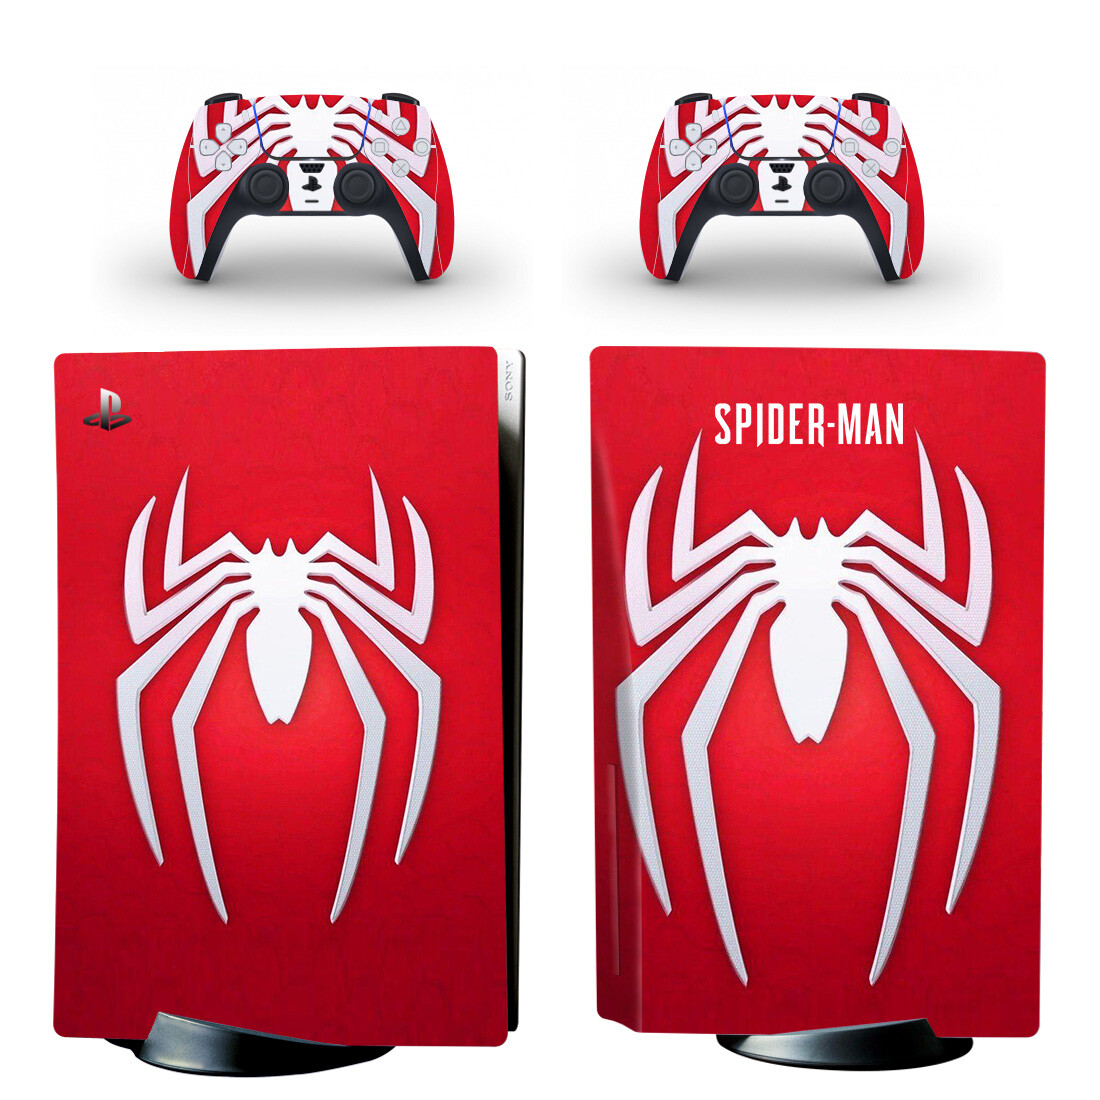 Spider Man Skin Sticker For PlayStation 5 And Controllers Design 1